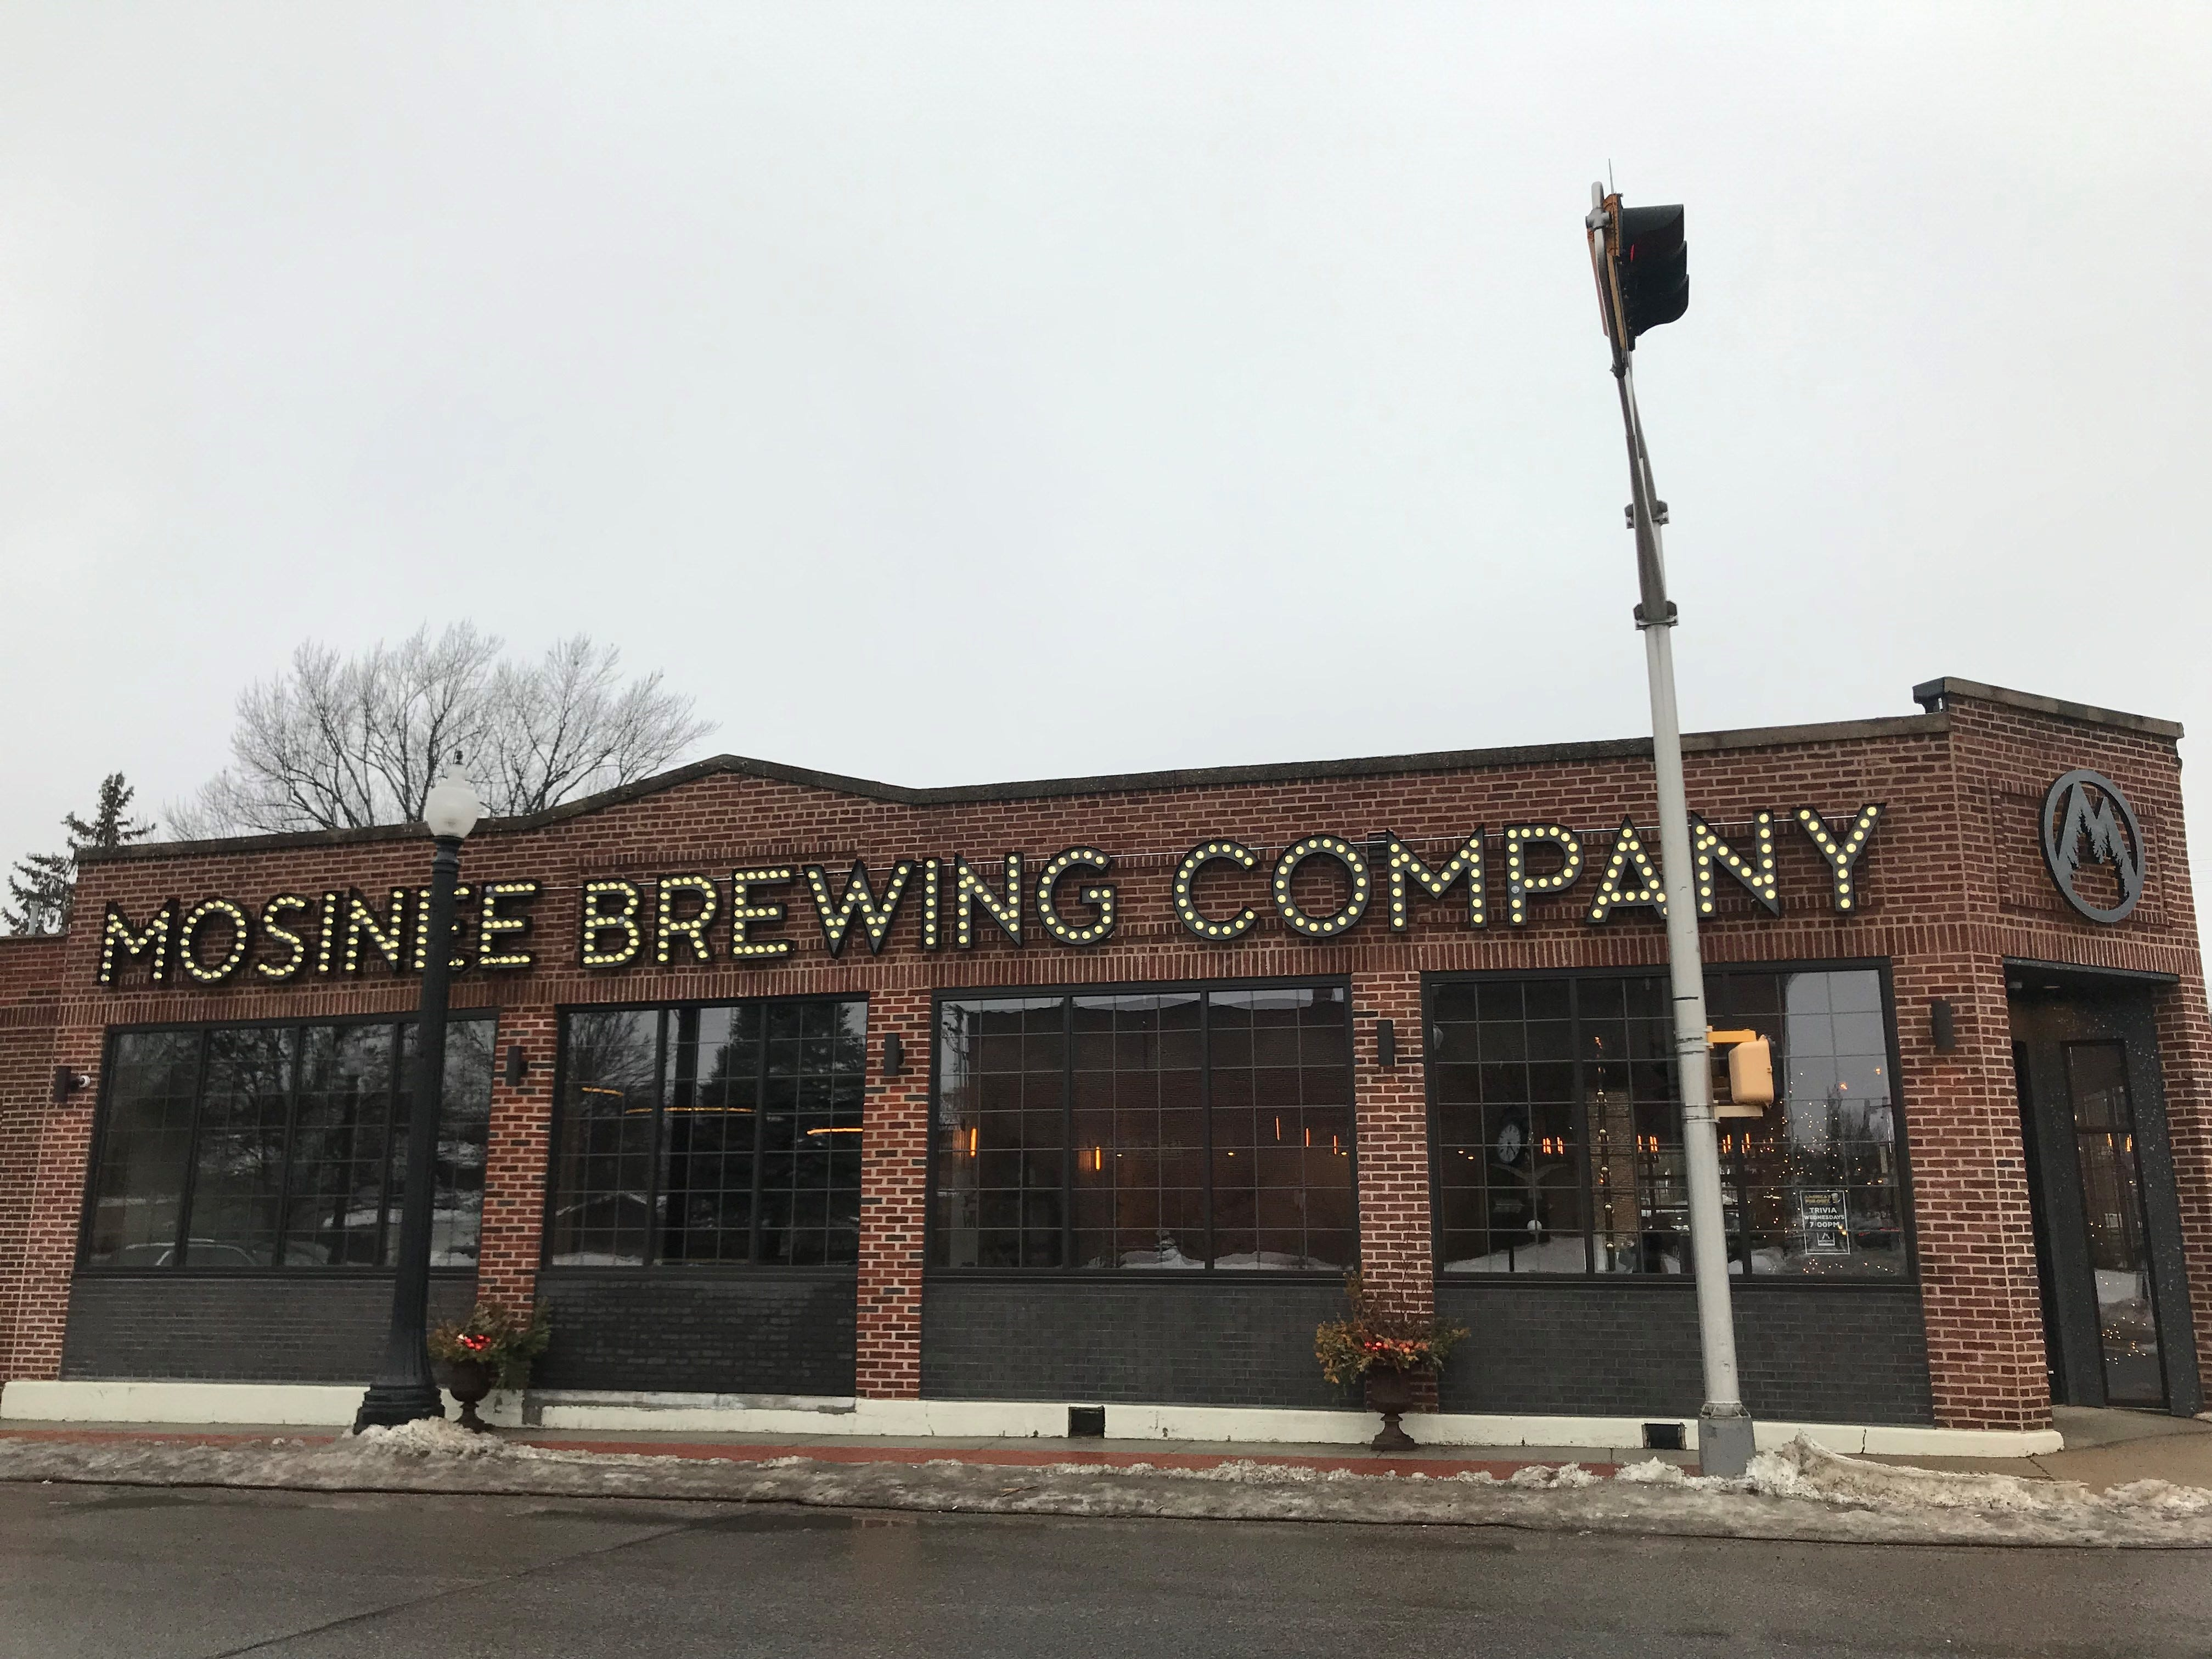 Mosinee Brewing Company opened at 401 4th St. in November 2018, but began making its own beer on March 12, 2019 after delays from the federal government shutdown.